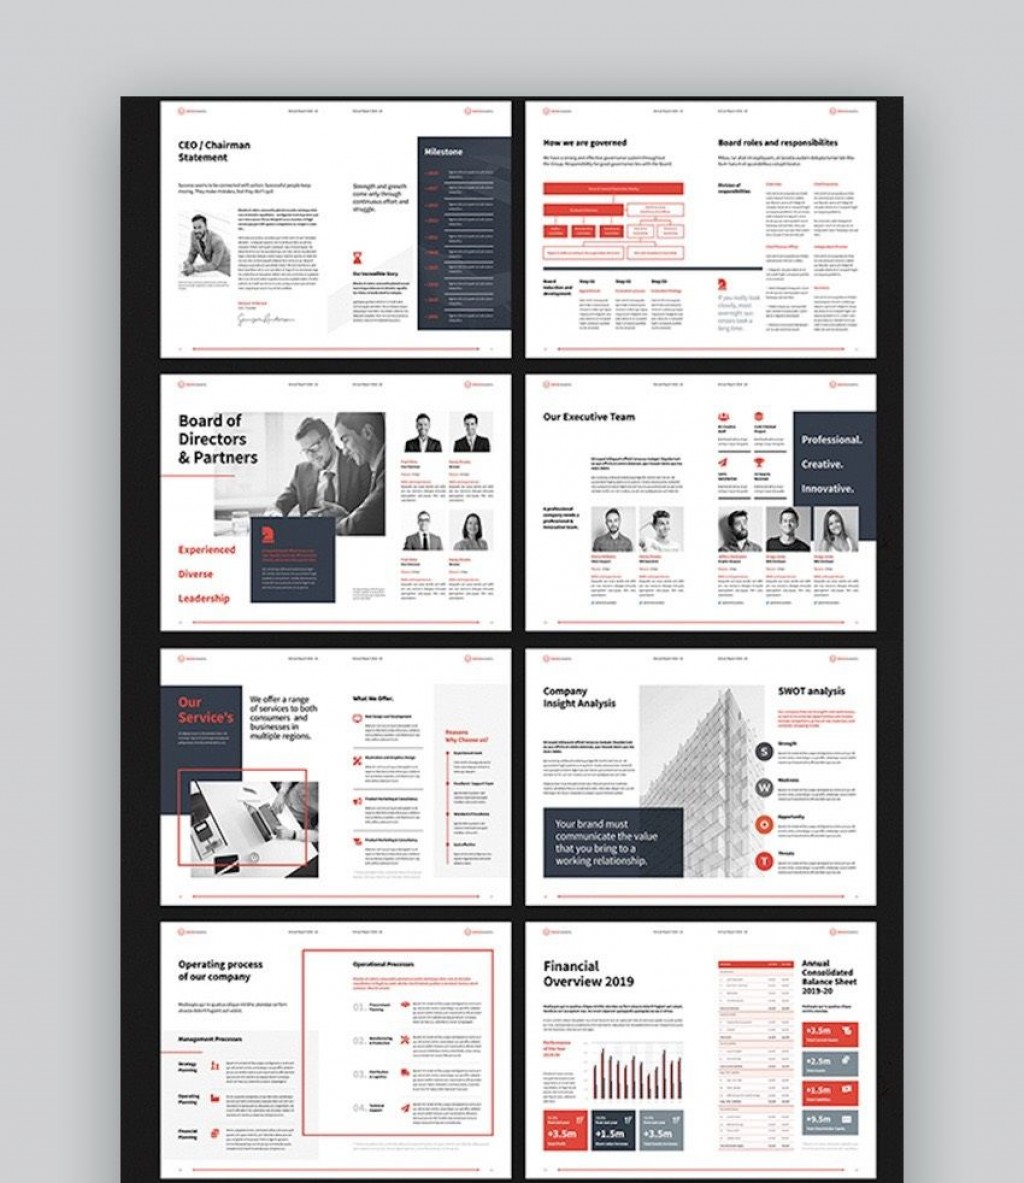 002 Surprising Annual Report Template Word High Def  Performance Rbi Format Ngo In DocLarge